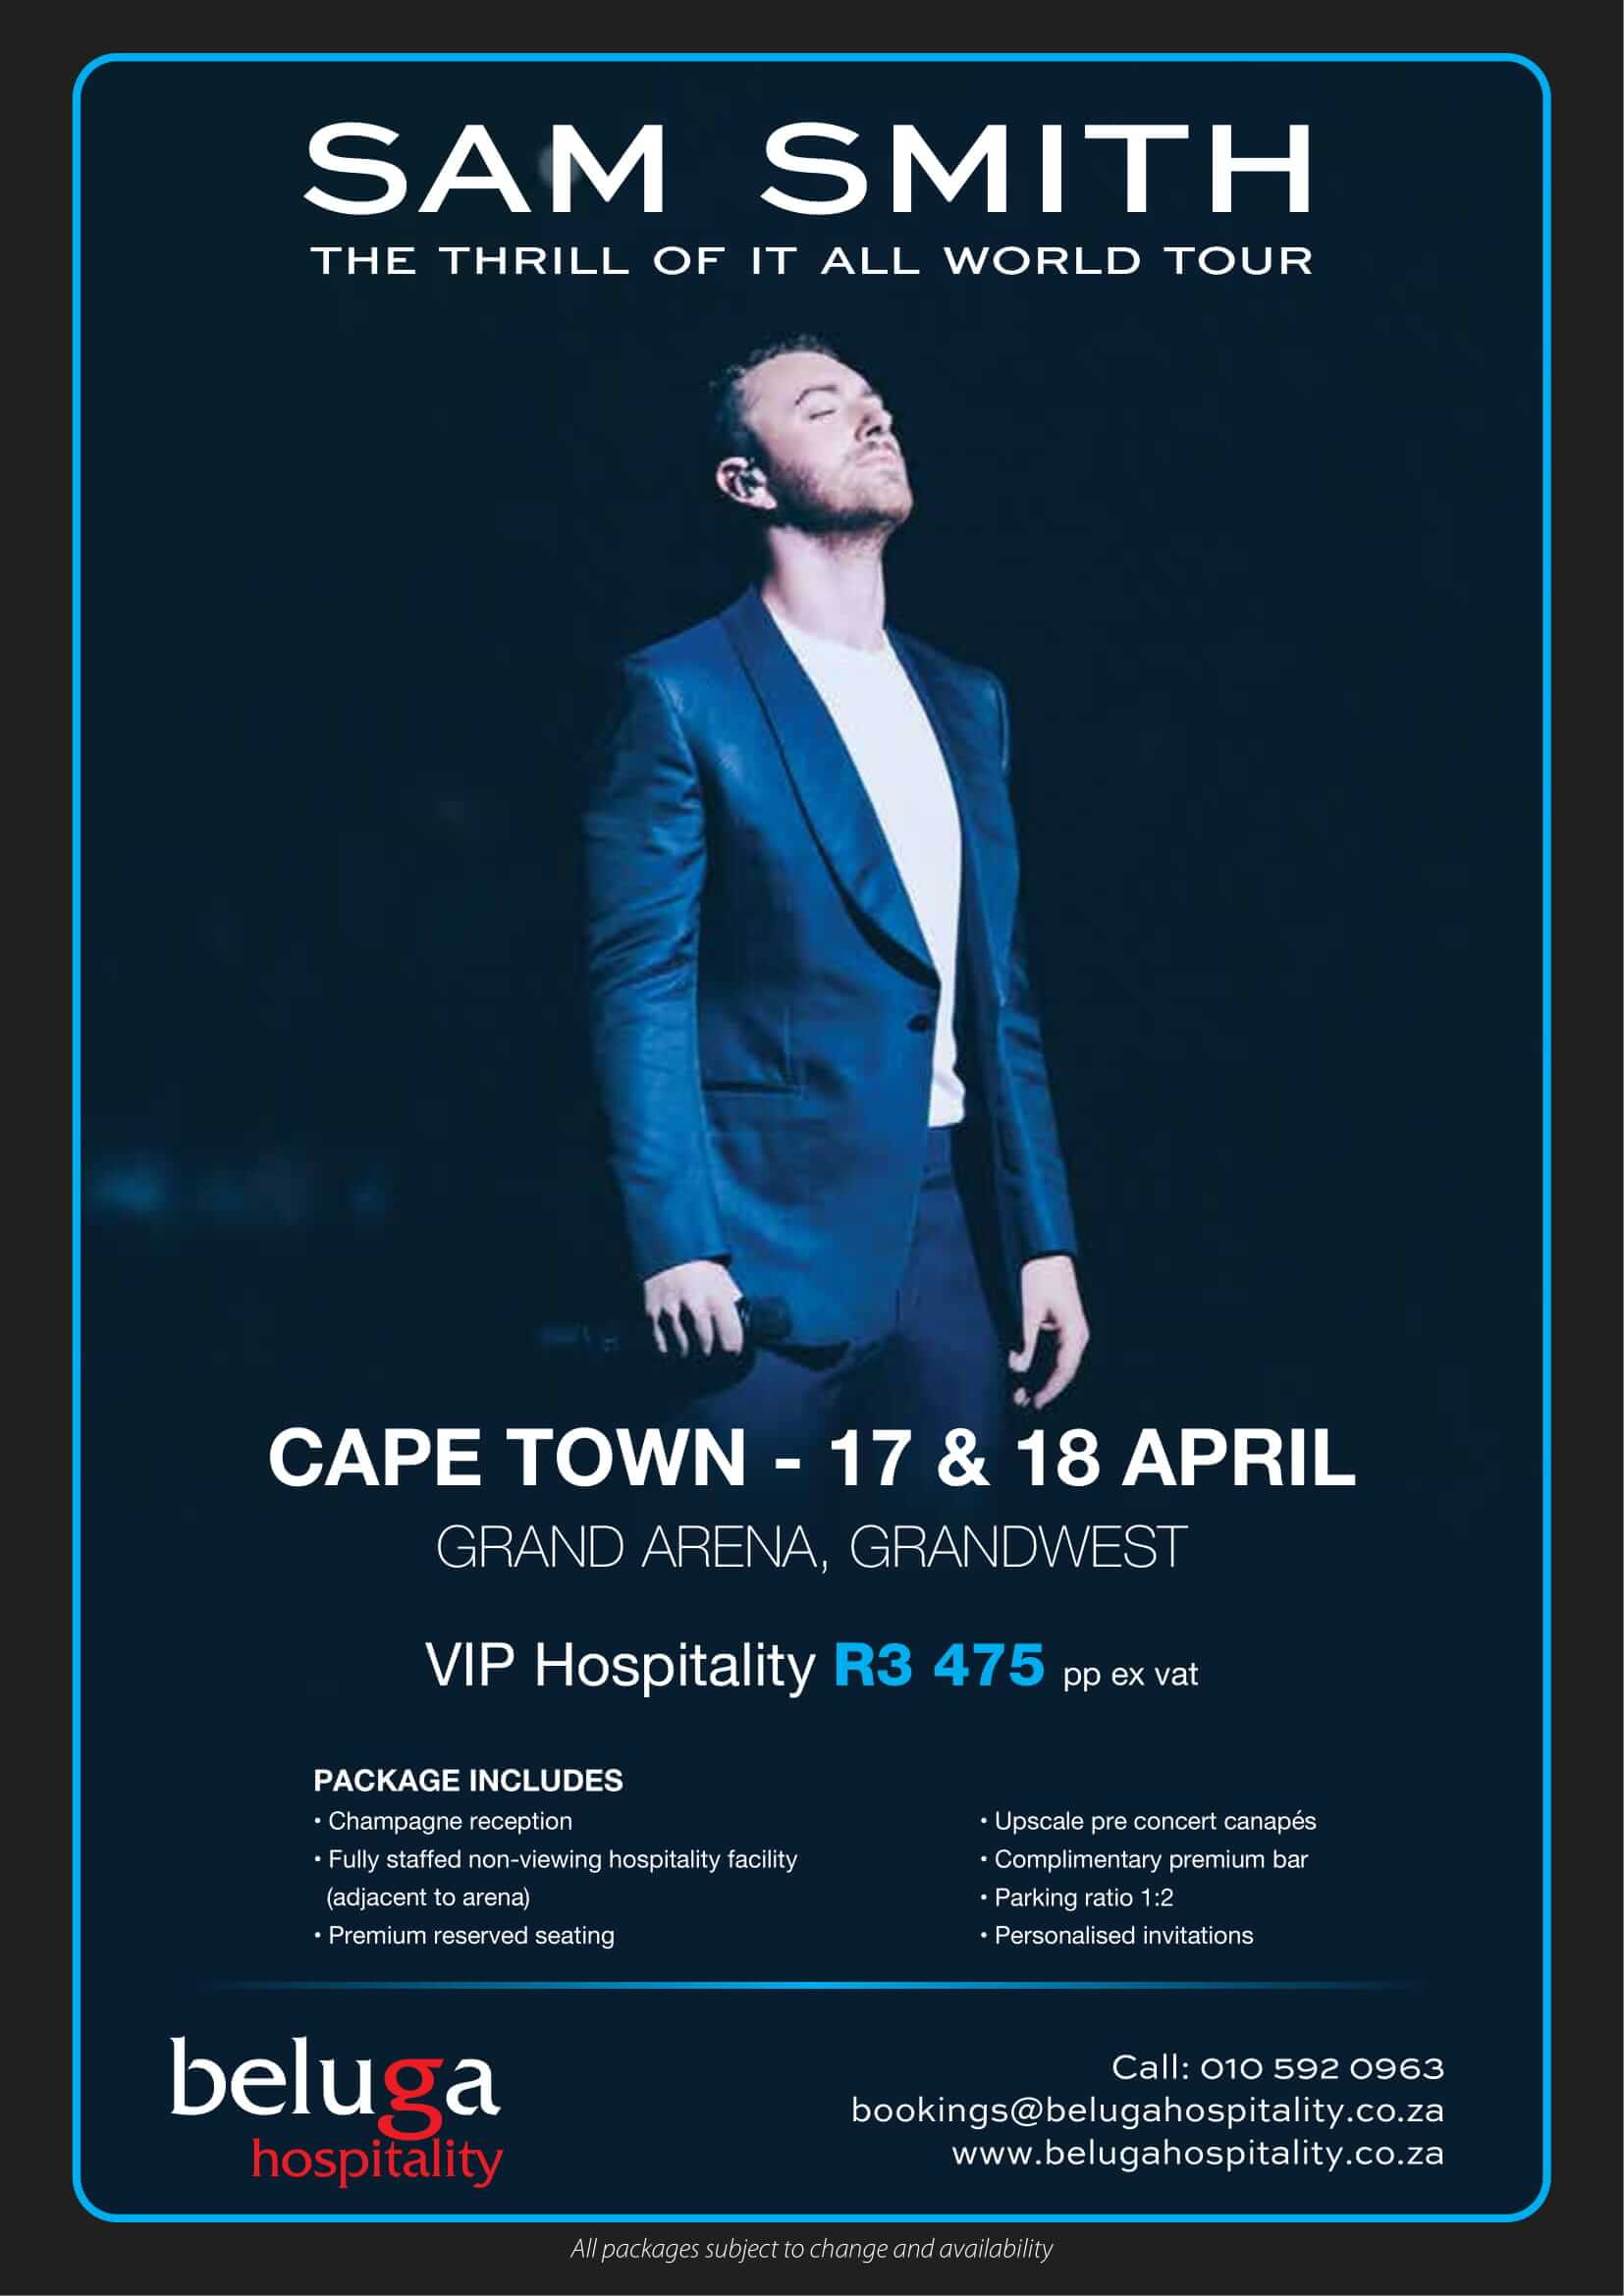 Sam Smith - The Thrill of it All World Tour - Beluga Hospitality-flyer